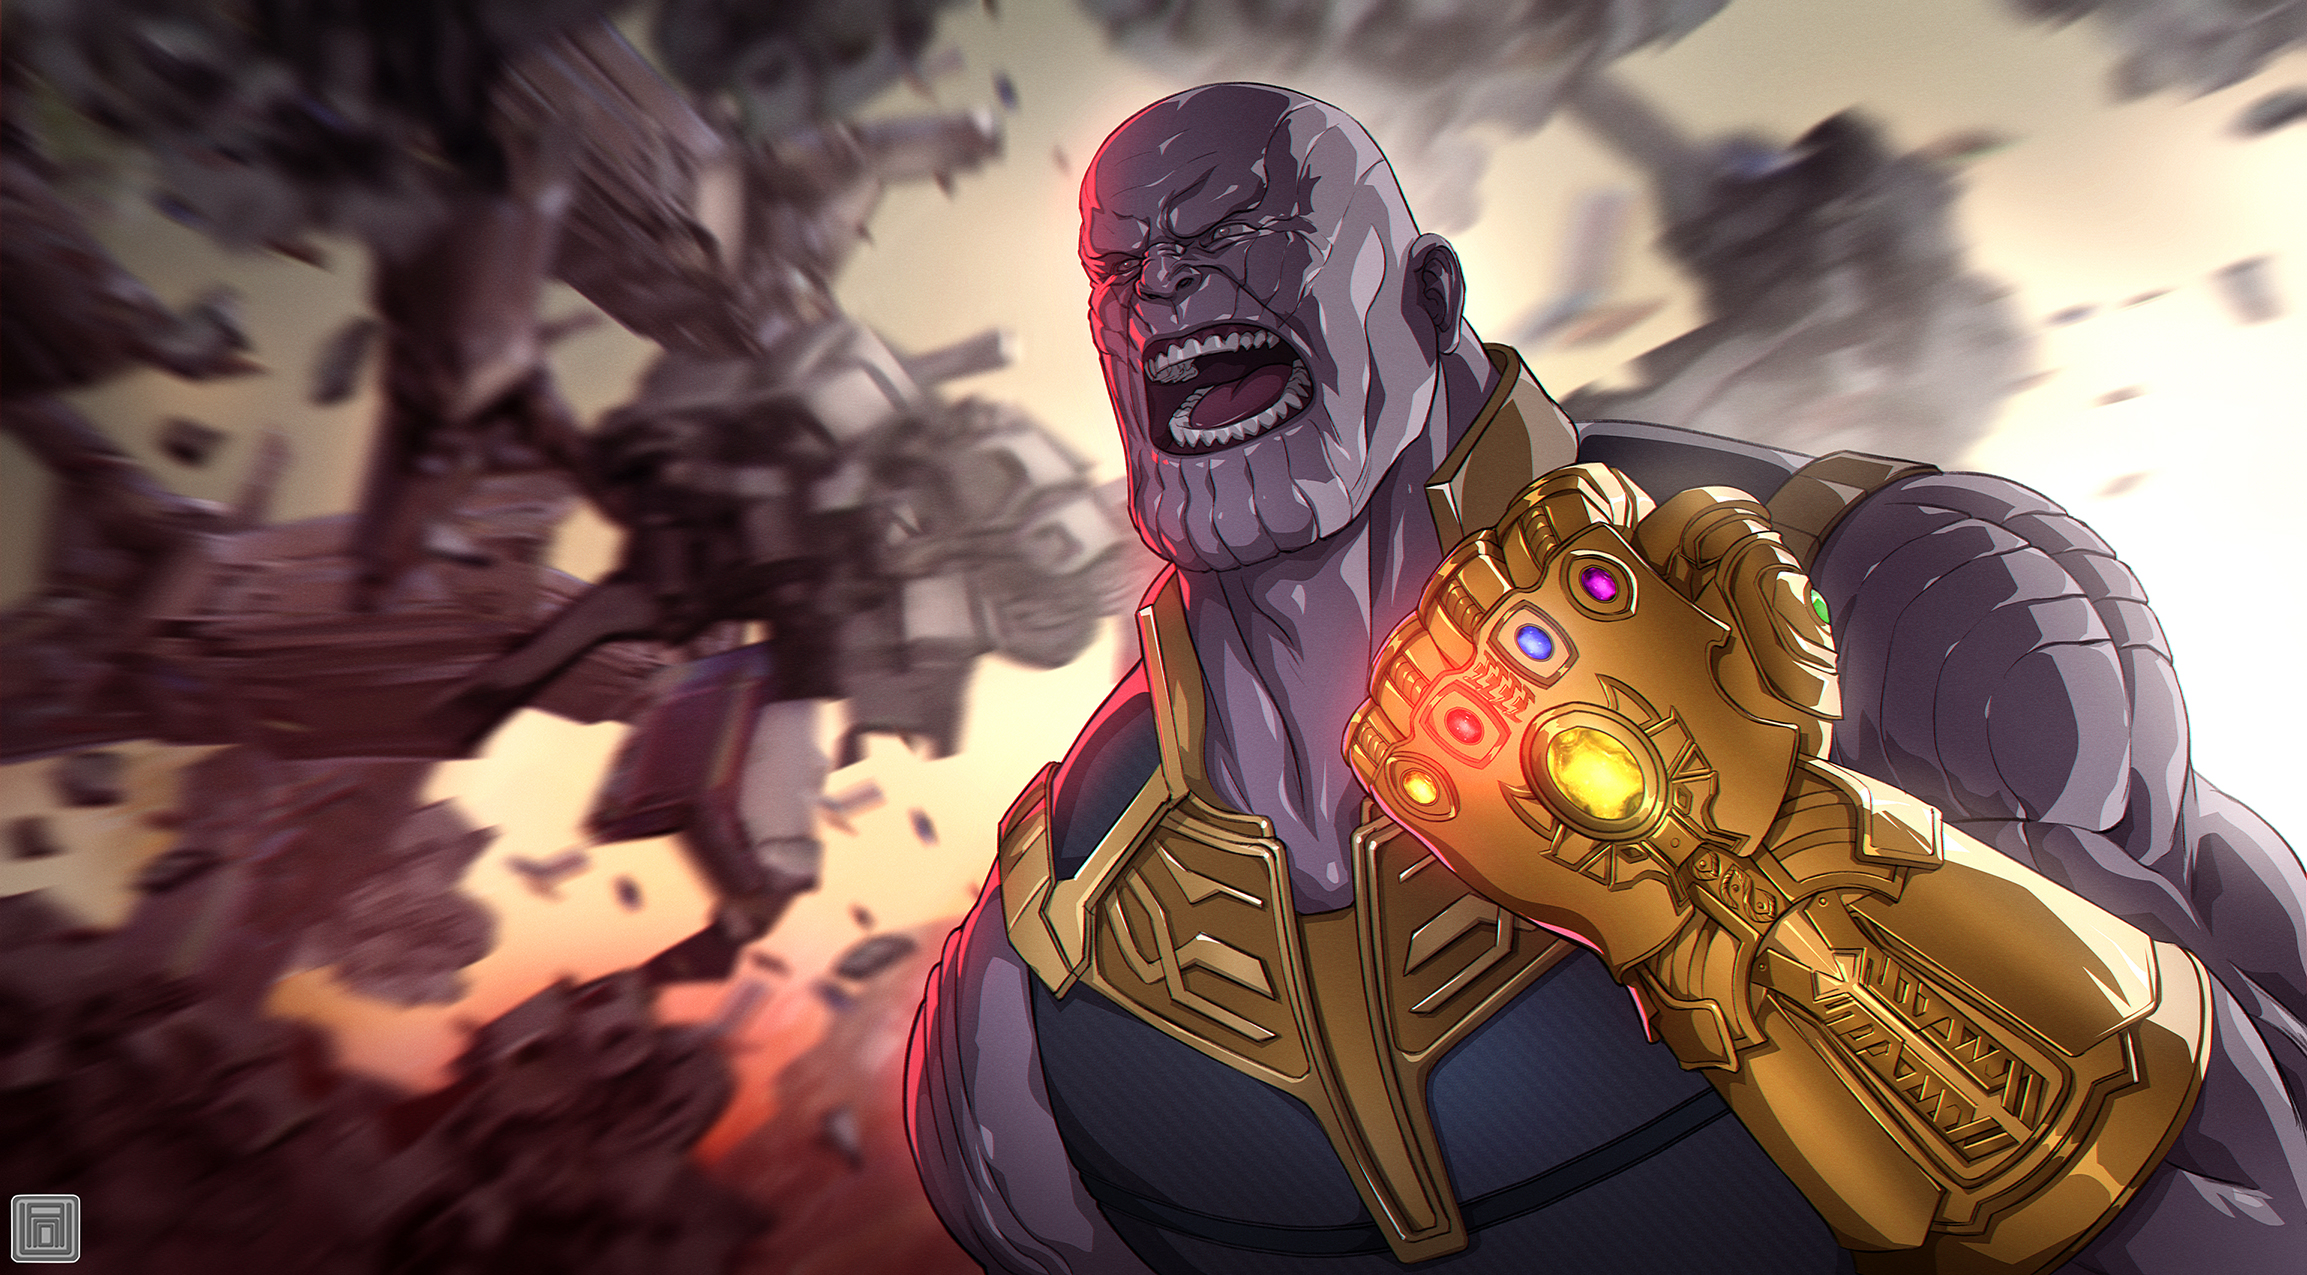 1920x1080 Avengers Infinity War Thanos Gauntlet Artwork